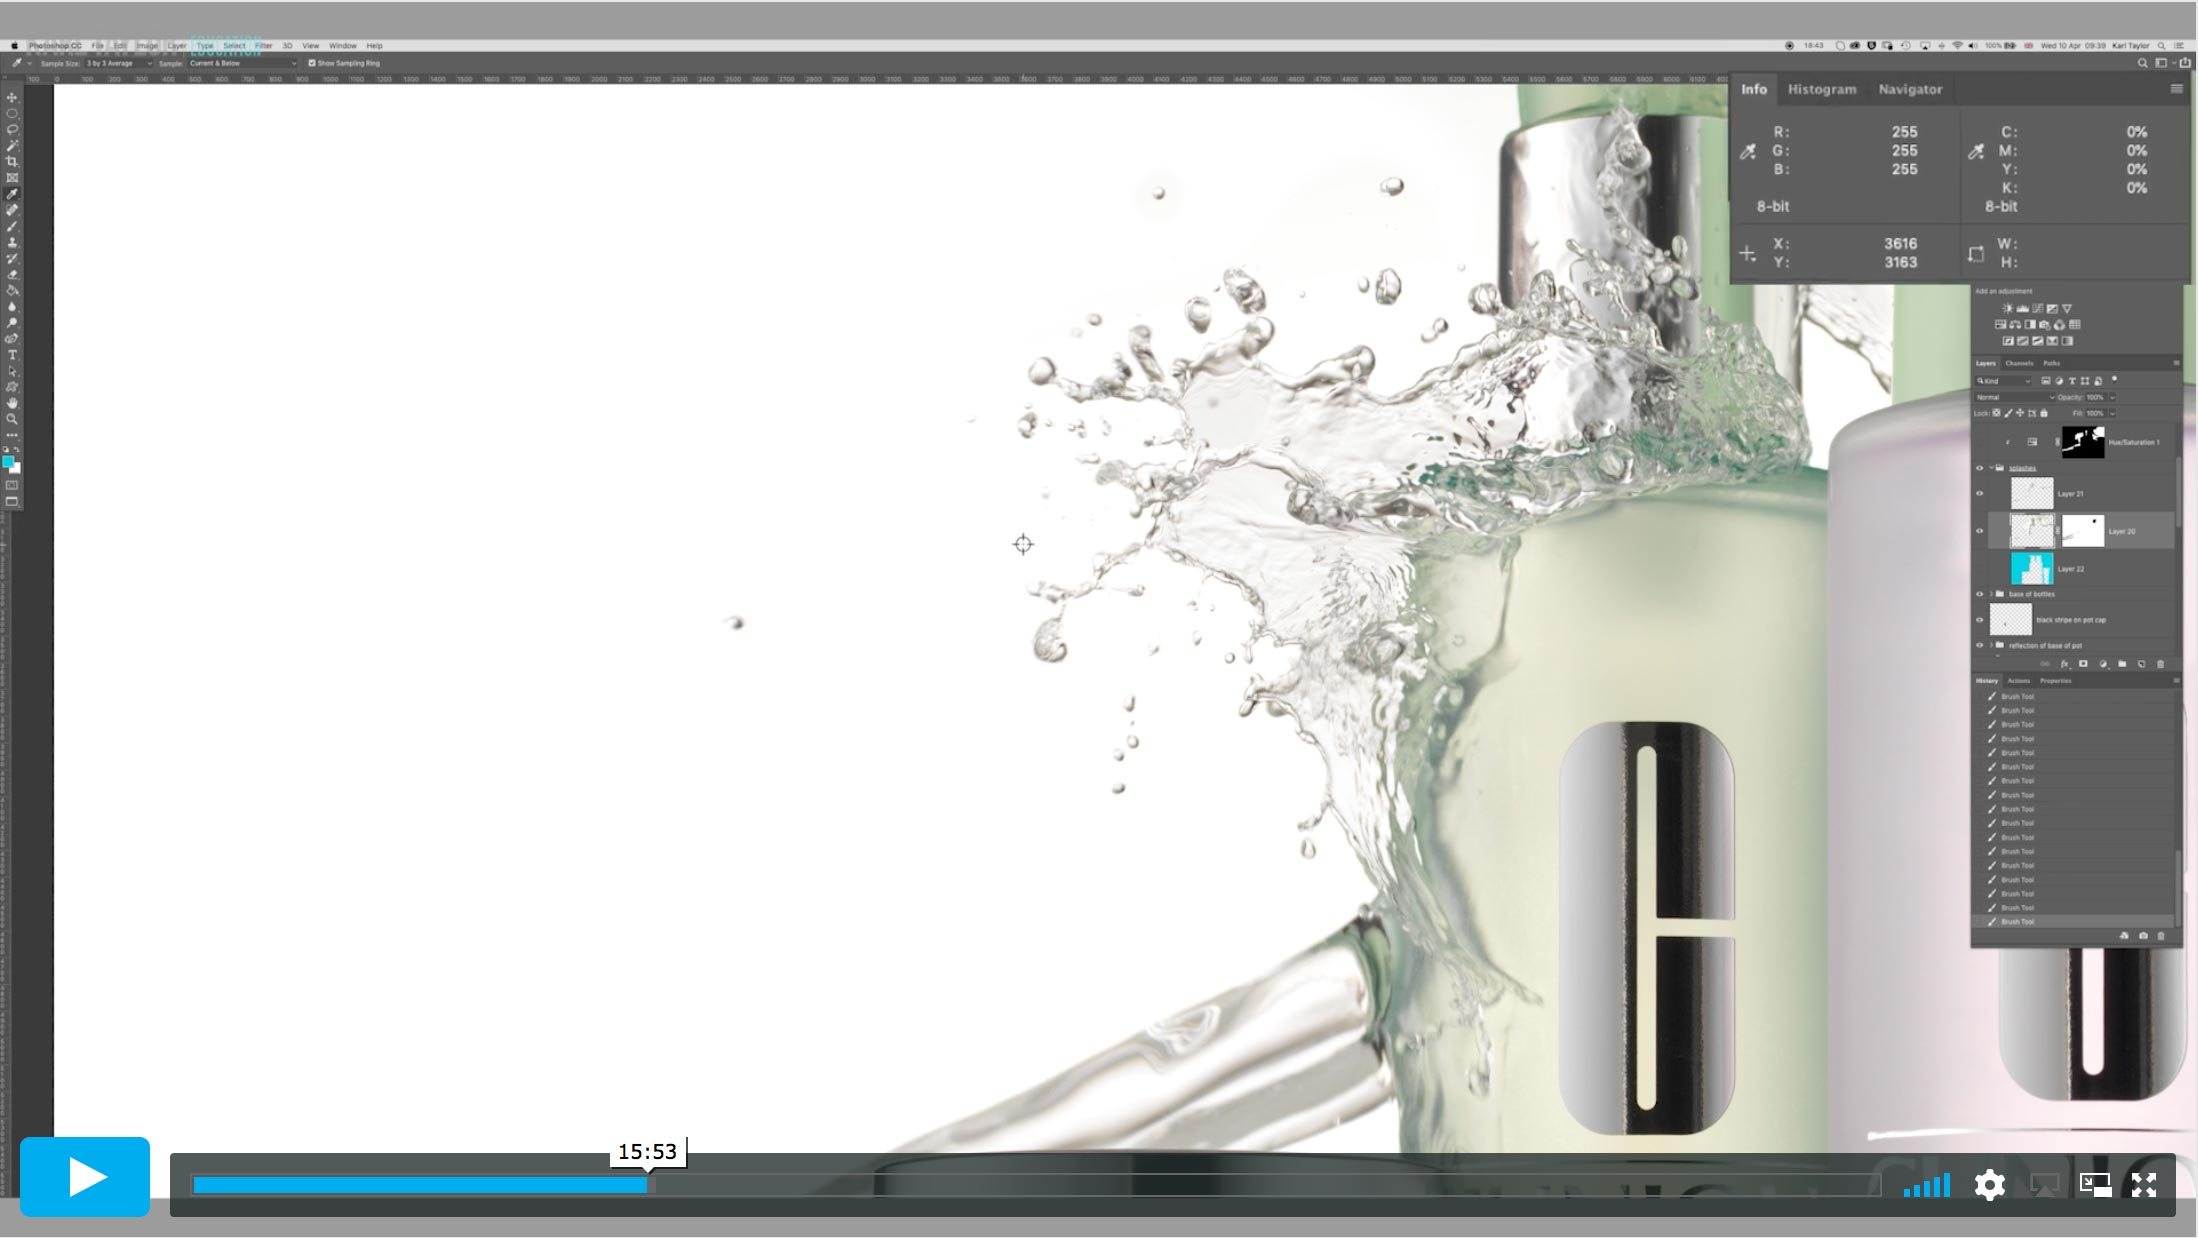 Clinique shoot post production 4: Creating a white background & refining water splash